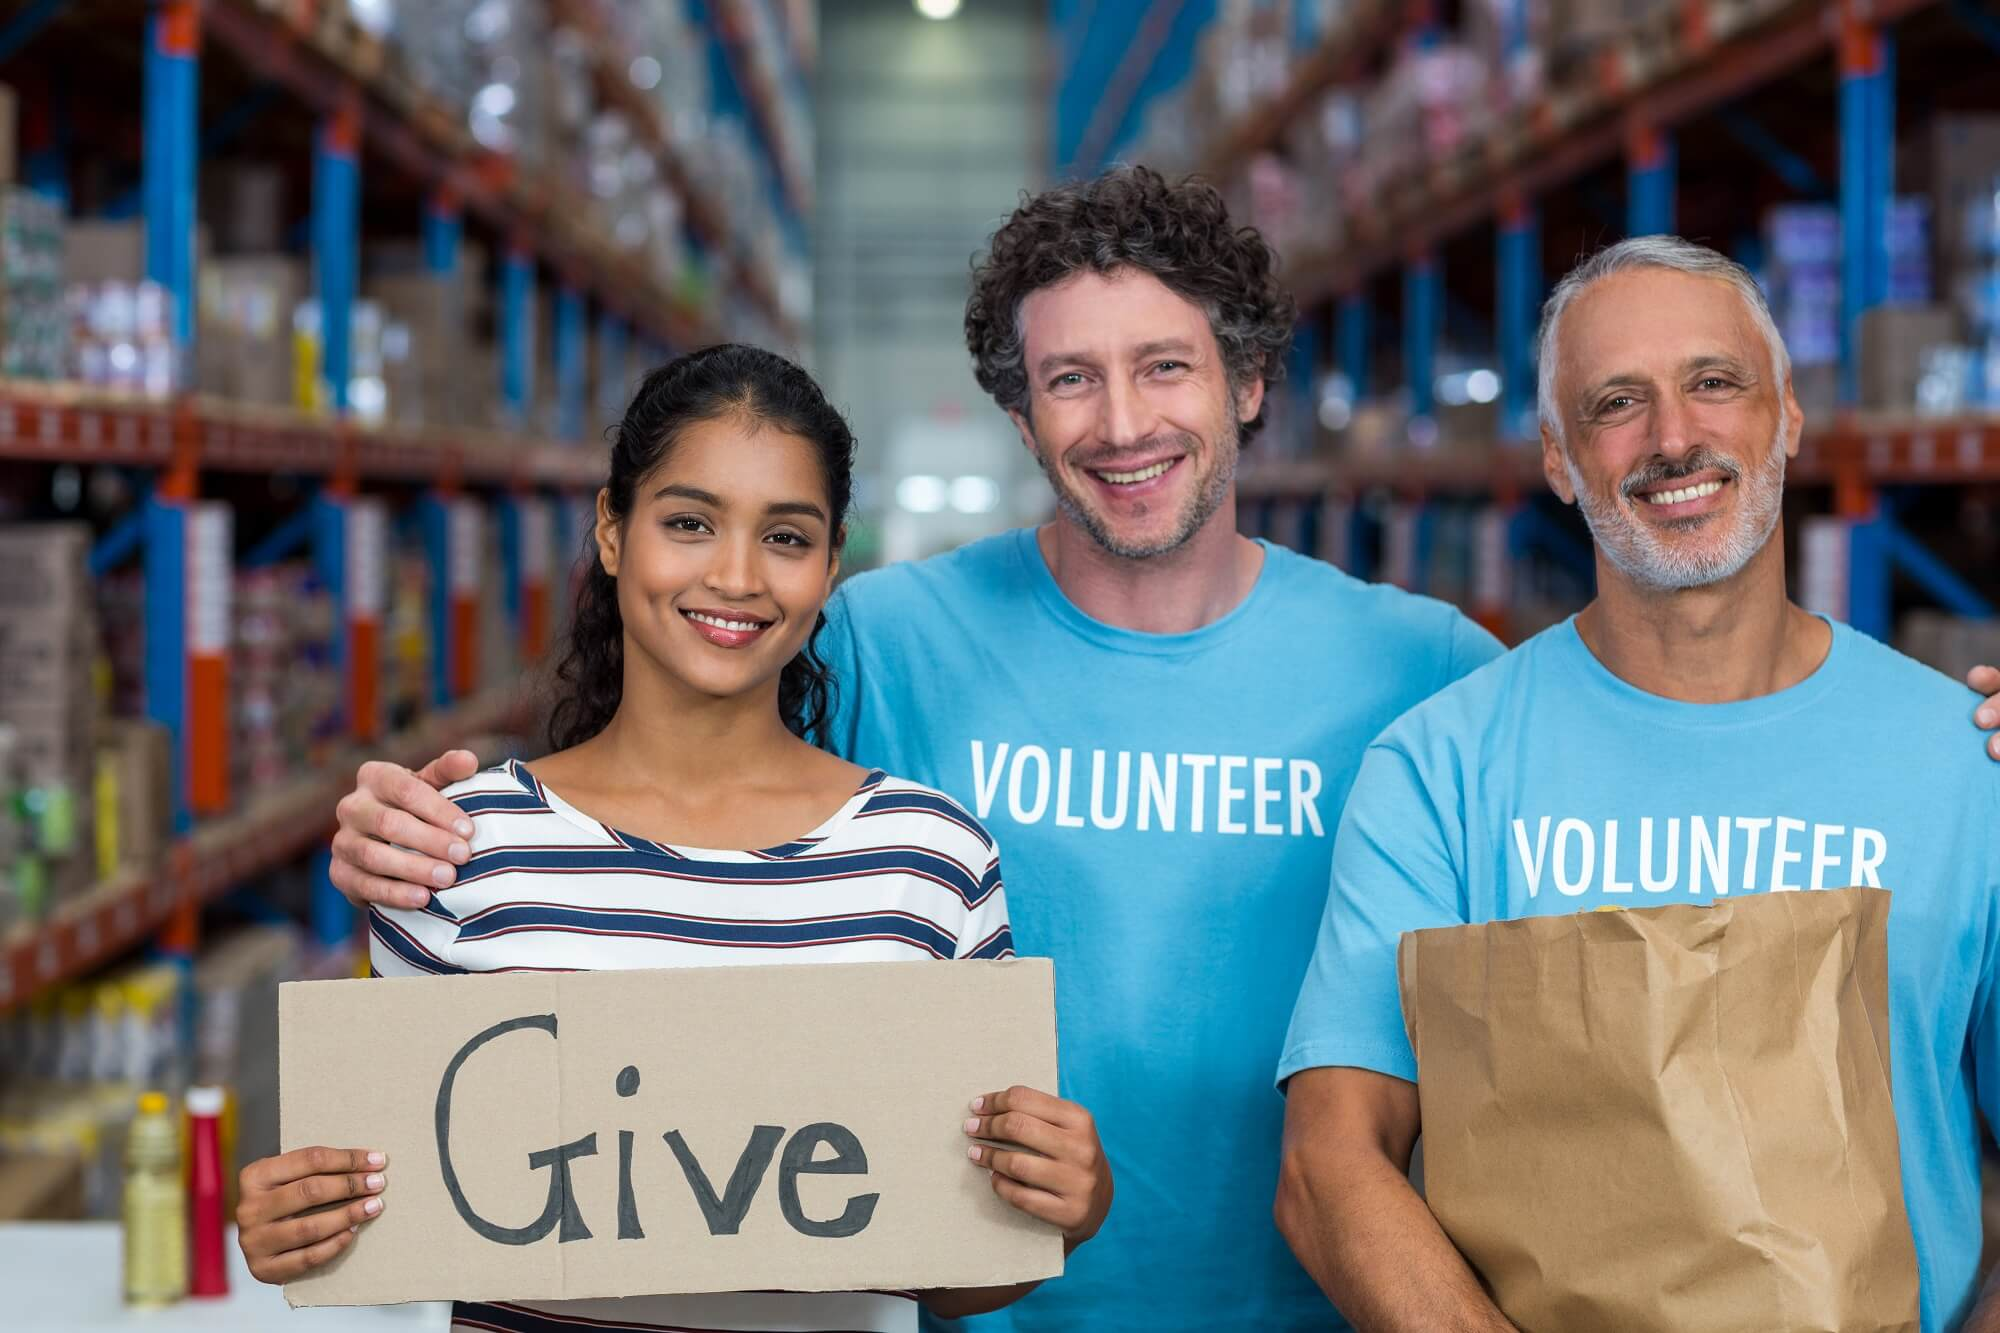 employees volunteering for charity happily